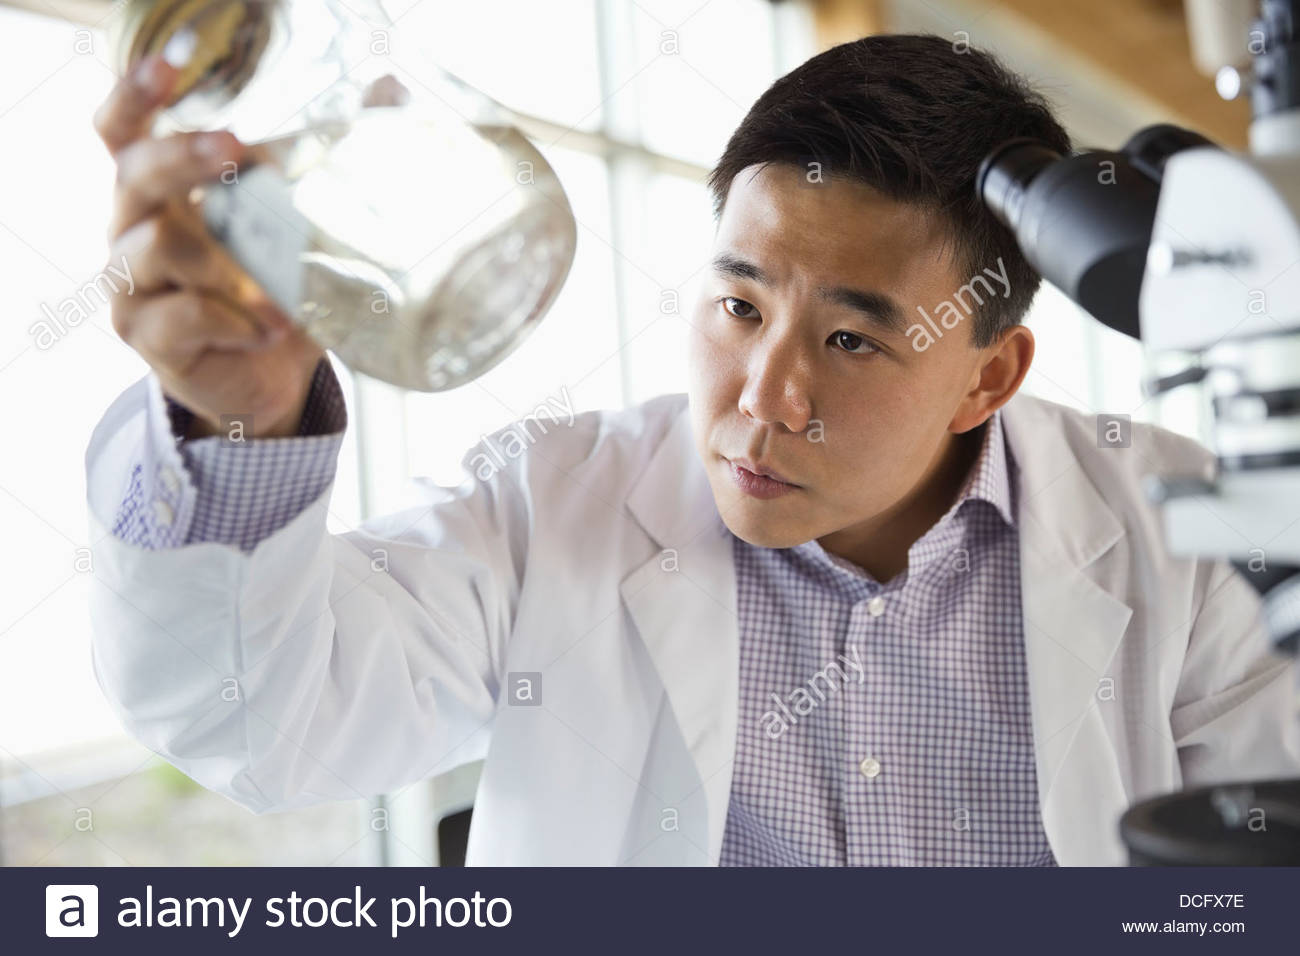 Technician analyzing water samples - Stock Image